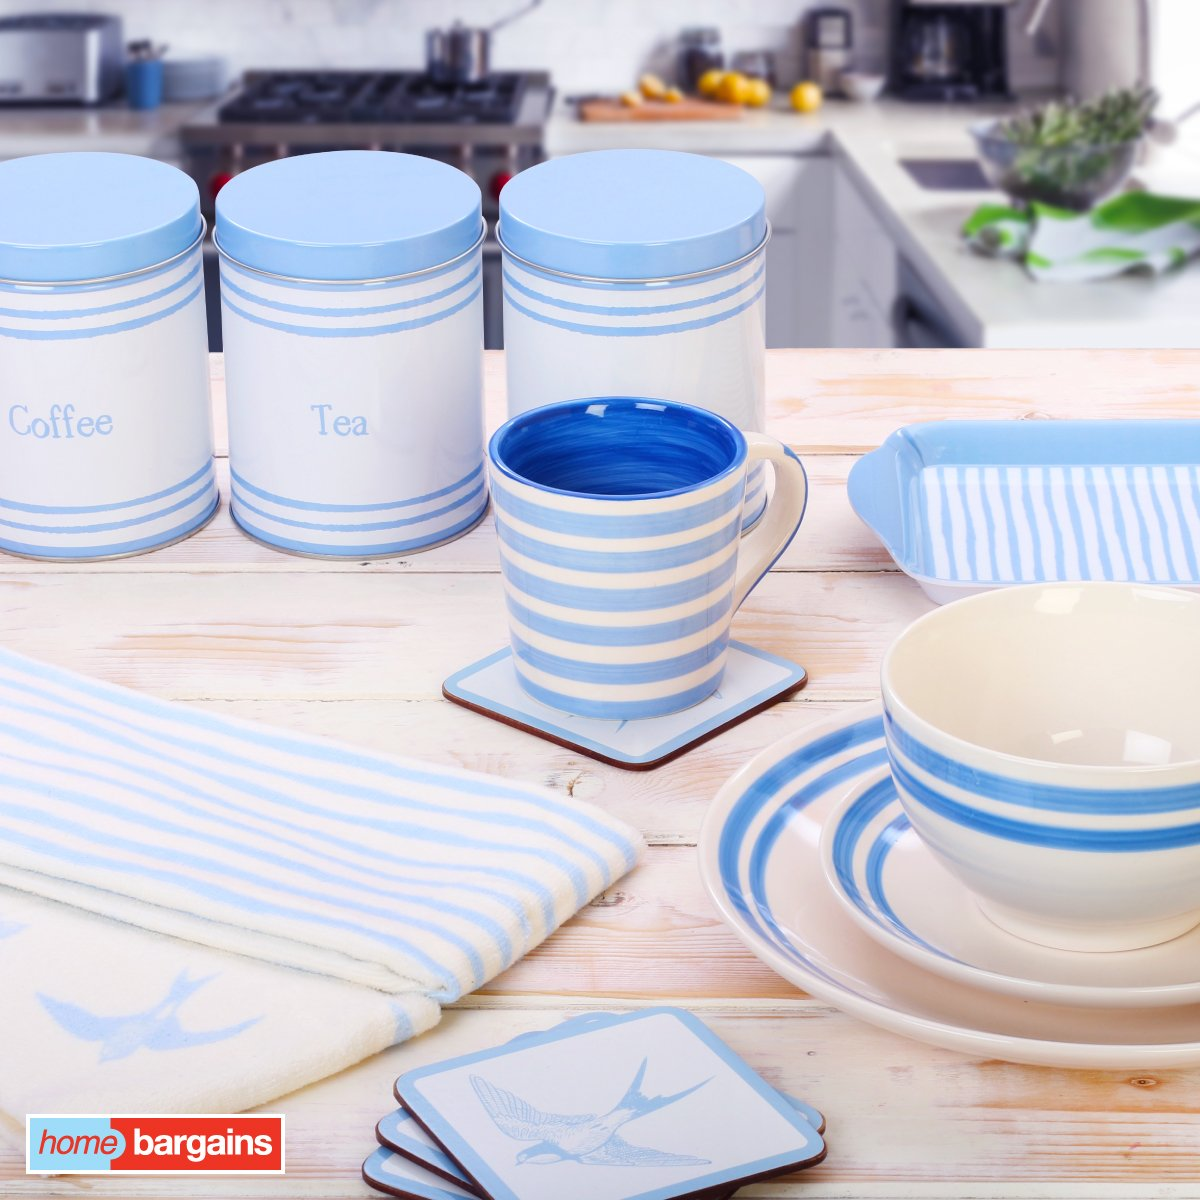 Home Bargains on Twitter  LIKE if you LOVE our Cornish Coast tableware set!u2026   & Home Bargains on Twitter: